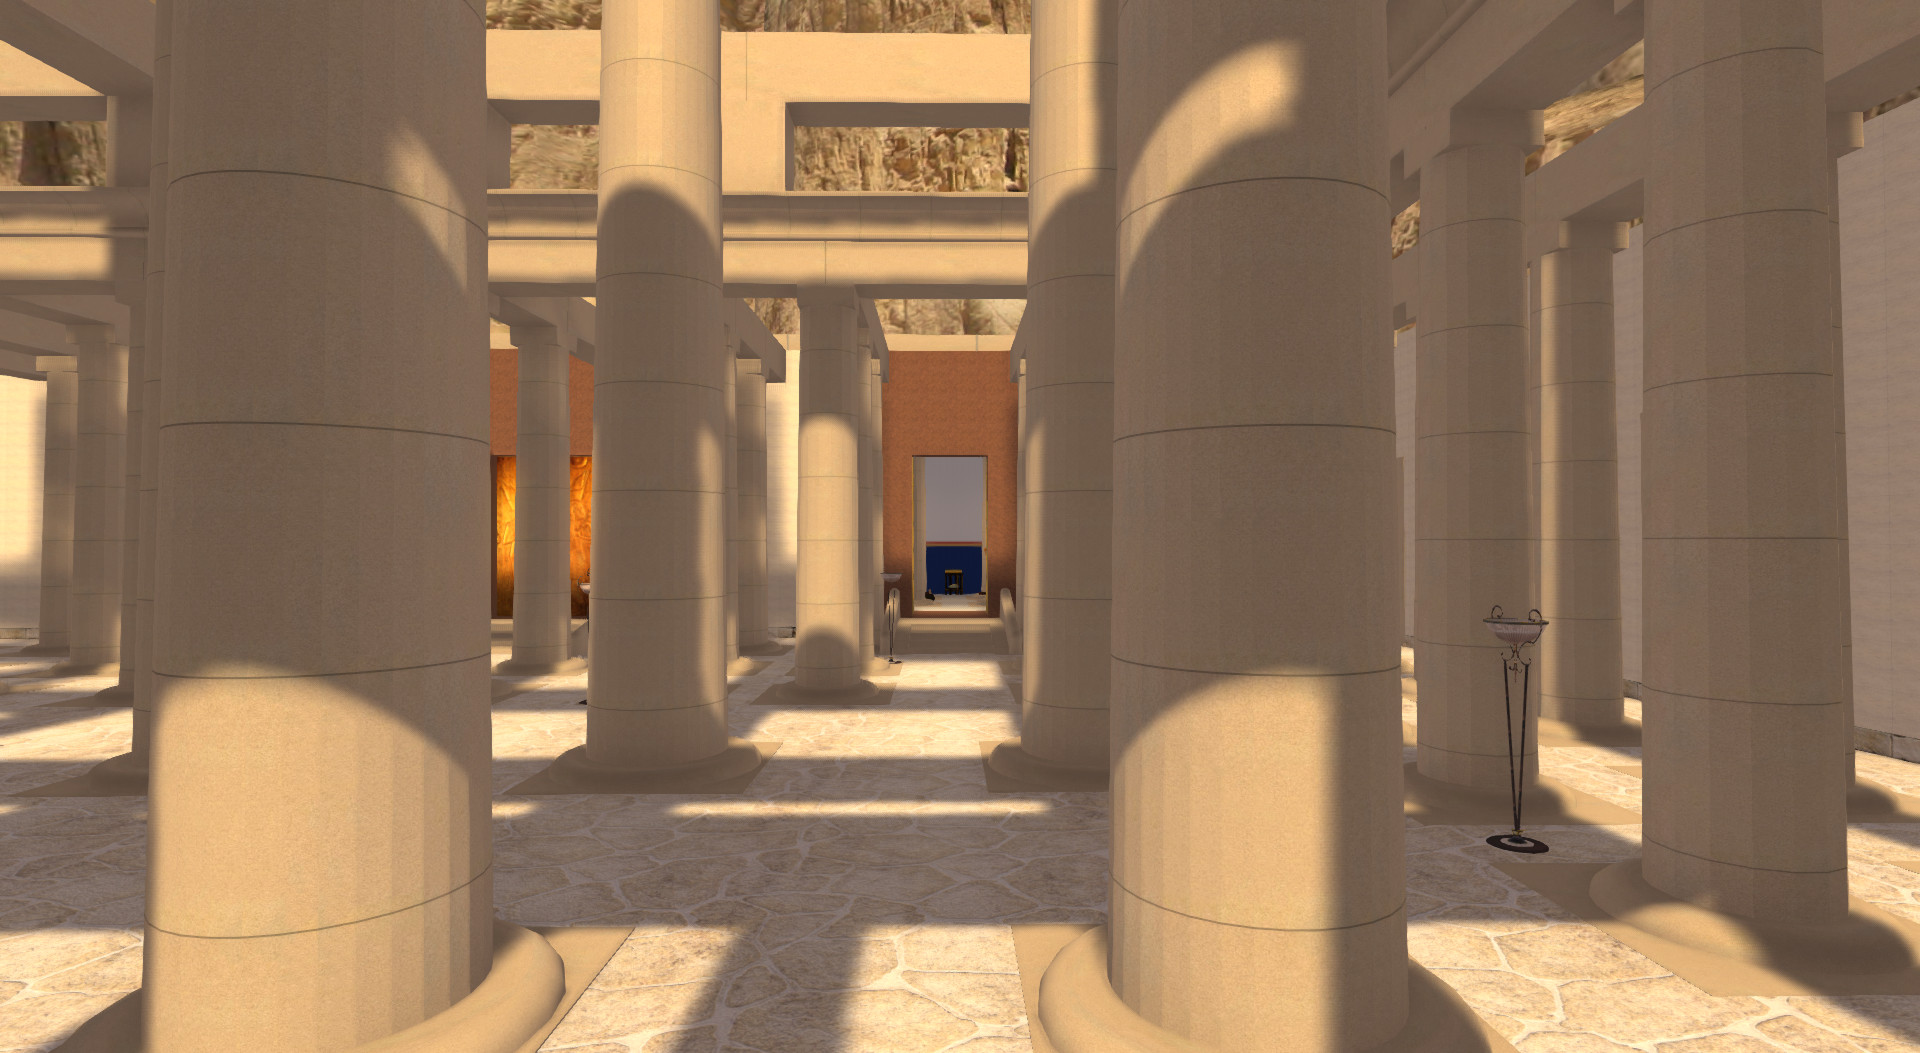 Thutmose III temple - Reconstruction due to new insights from Campaigns 2012-2013